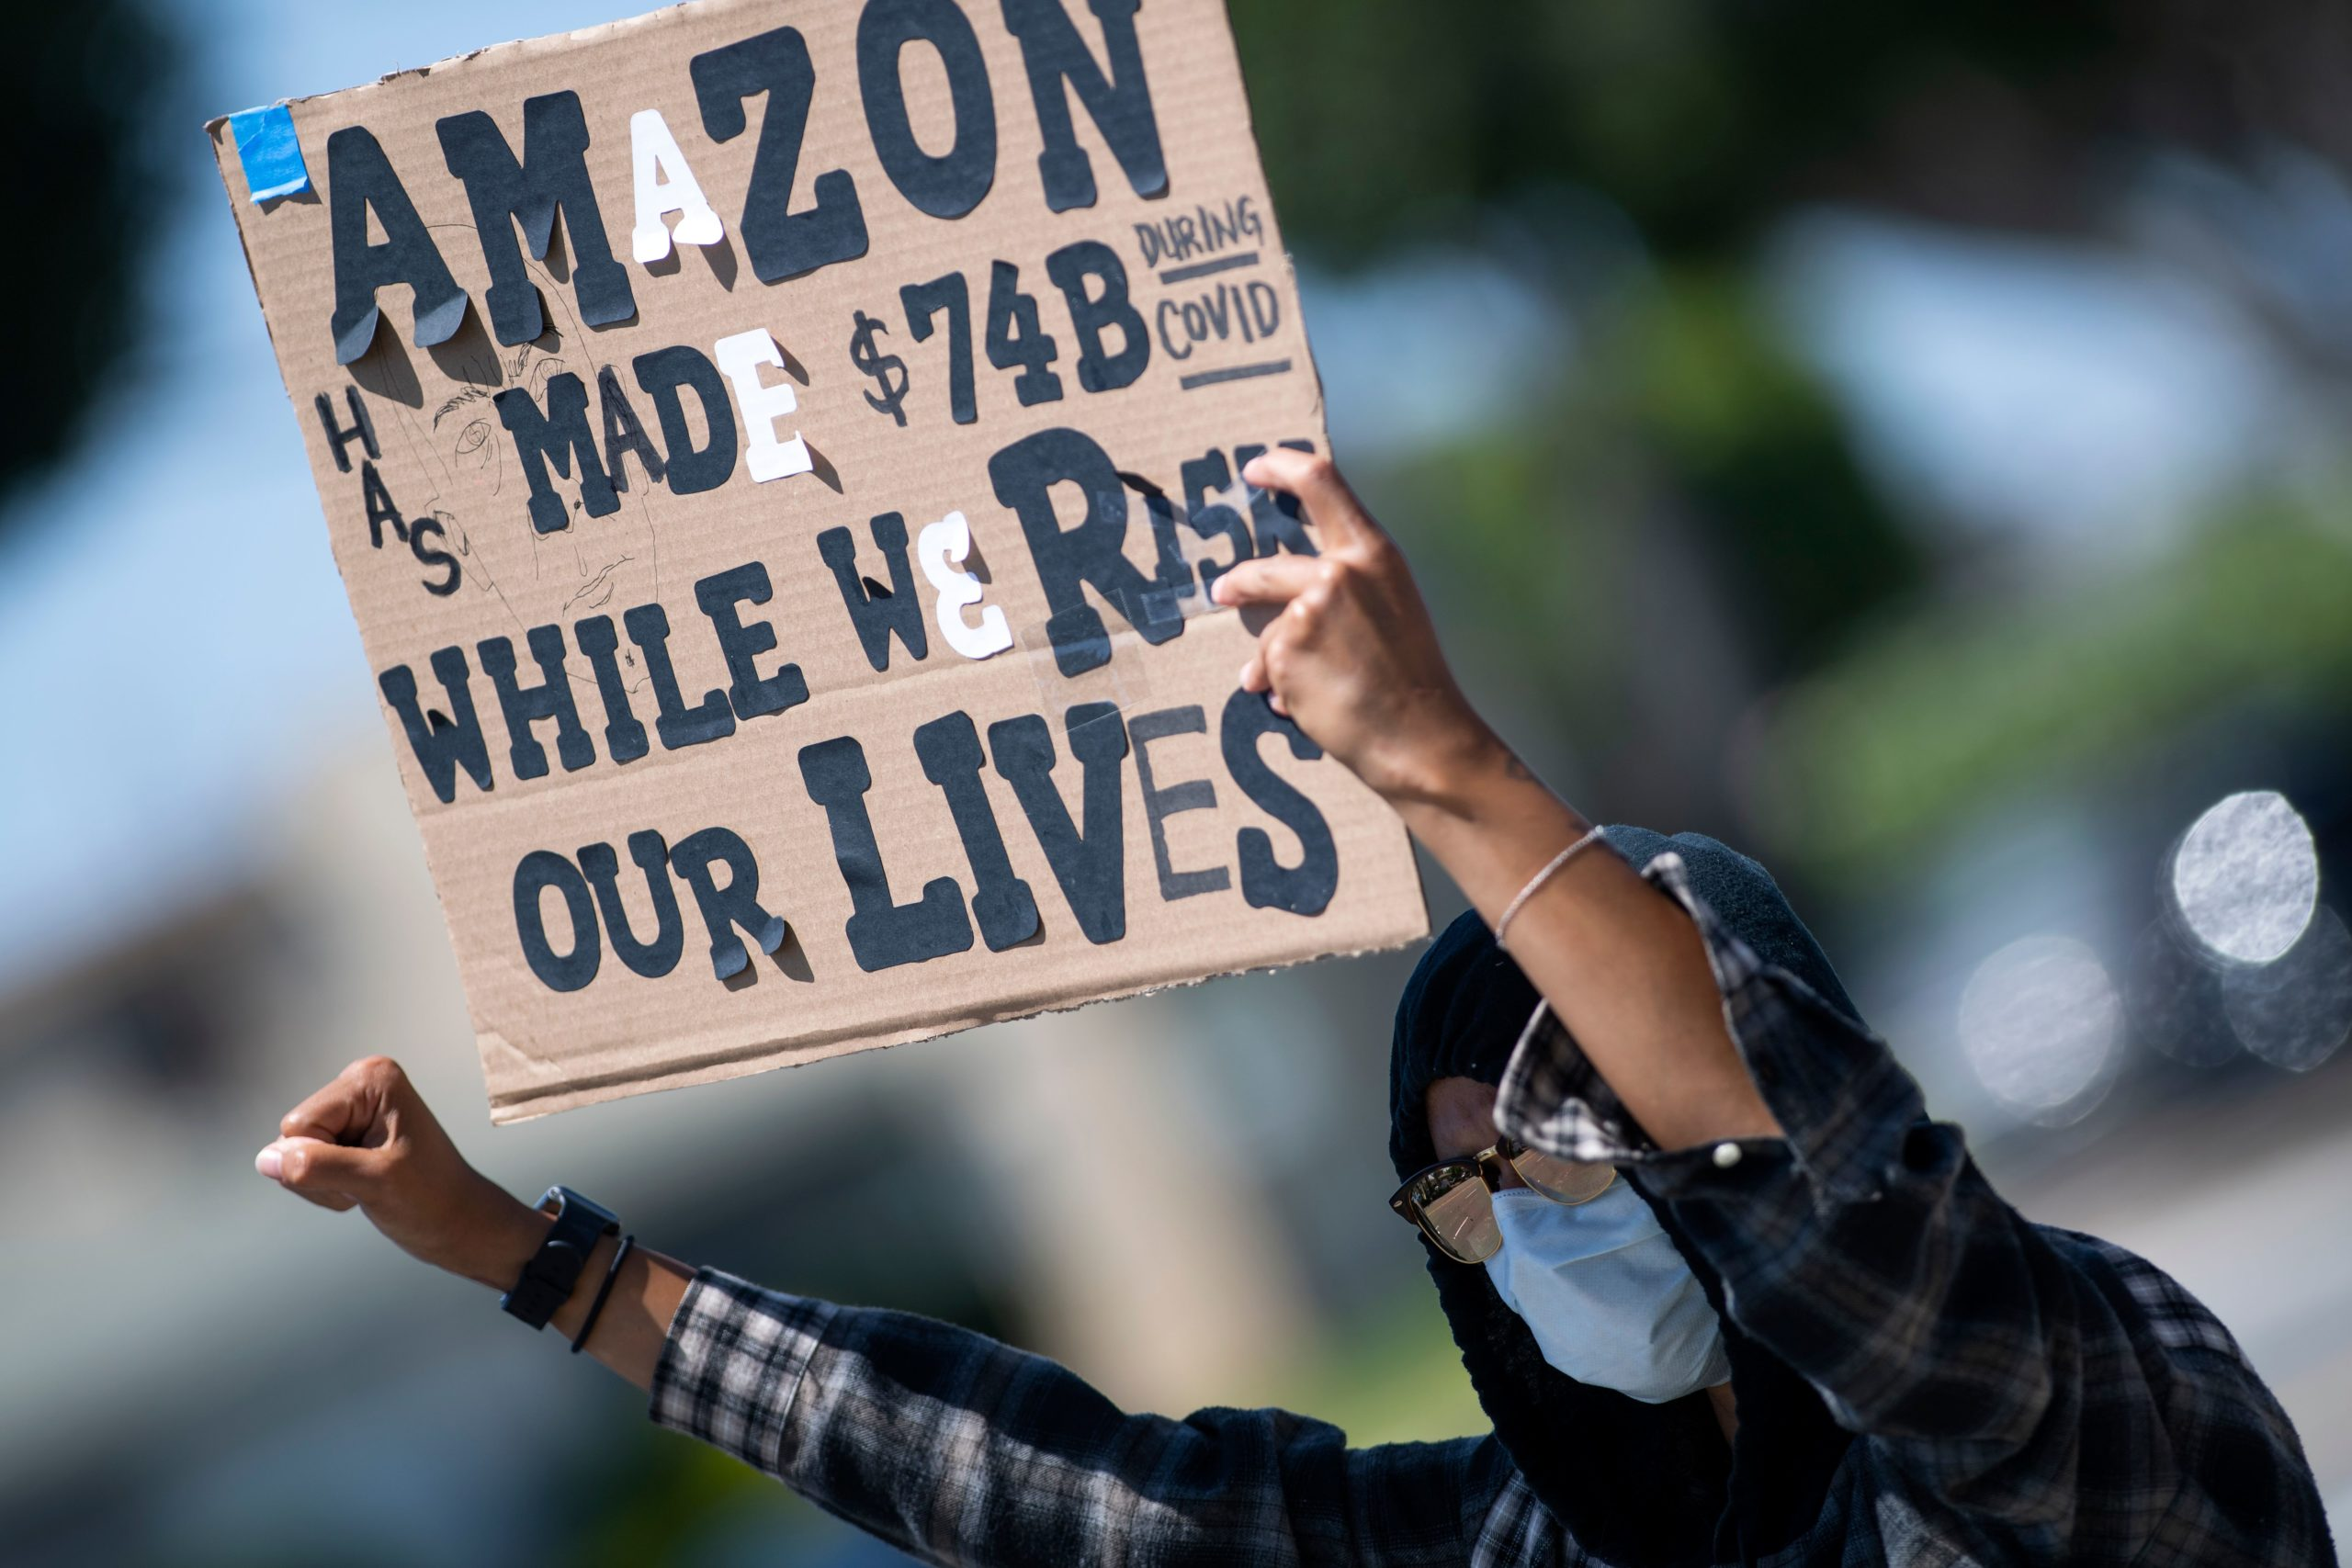 Workers protest in favor of adequate protections in an Amazon workplace on May 1, 2020 in Hawthorne, California. (Valerie Macon/AFP via Getty Images)